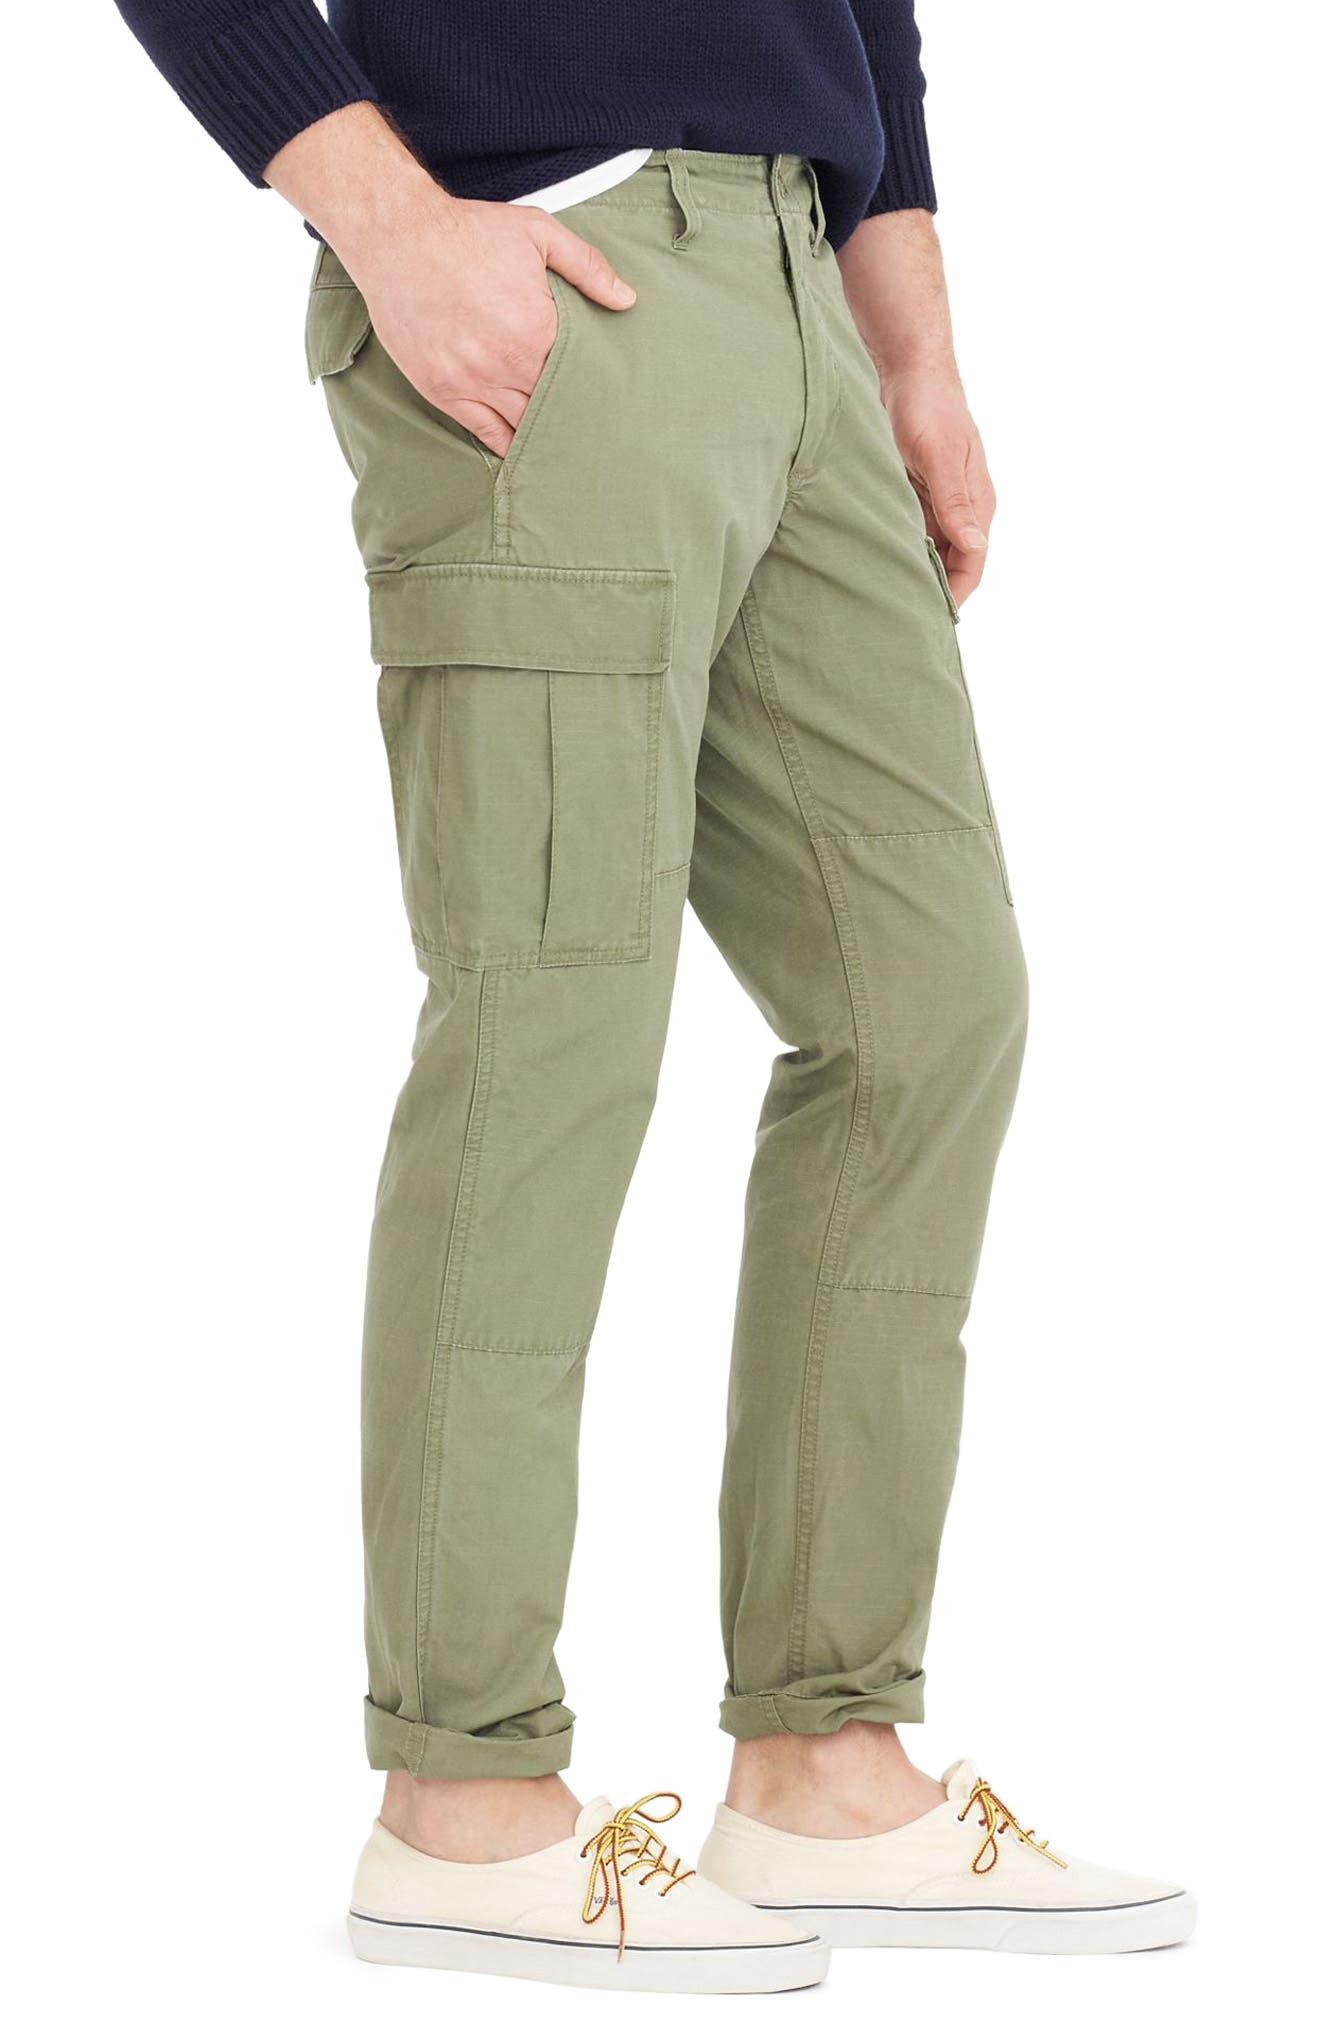 770 Straight Fit Ripstop Cargo Pants,                             Alternate thumbnail 3, color,                             300